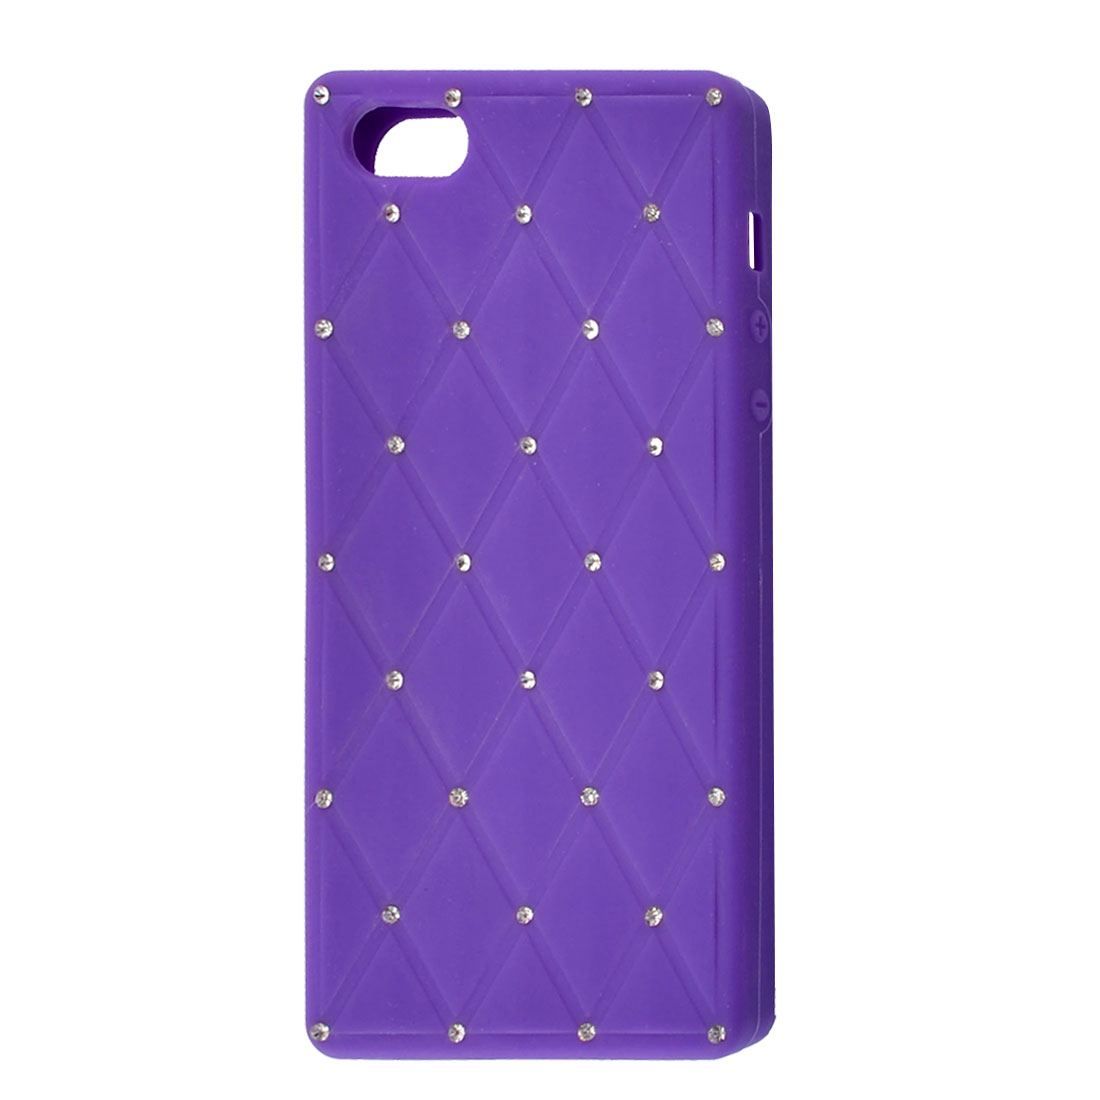 Purple Soft Silicone Faux Rhinestone Decor Shield Cover Case for iPhone 5 5G